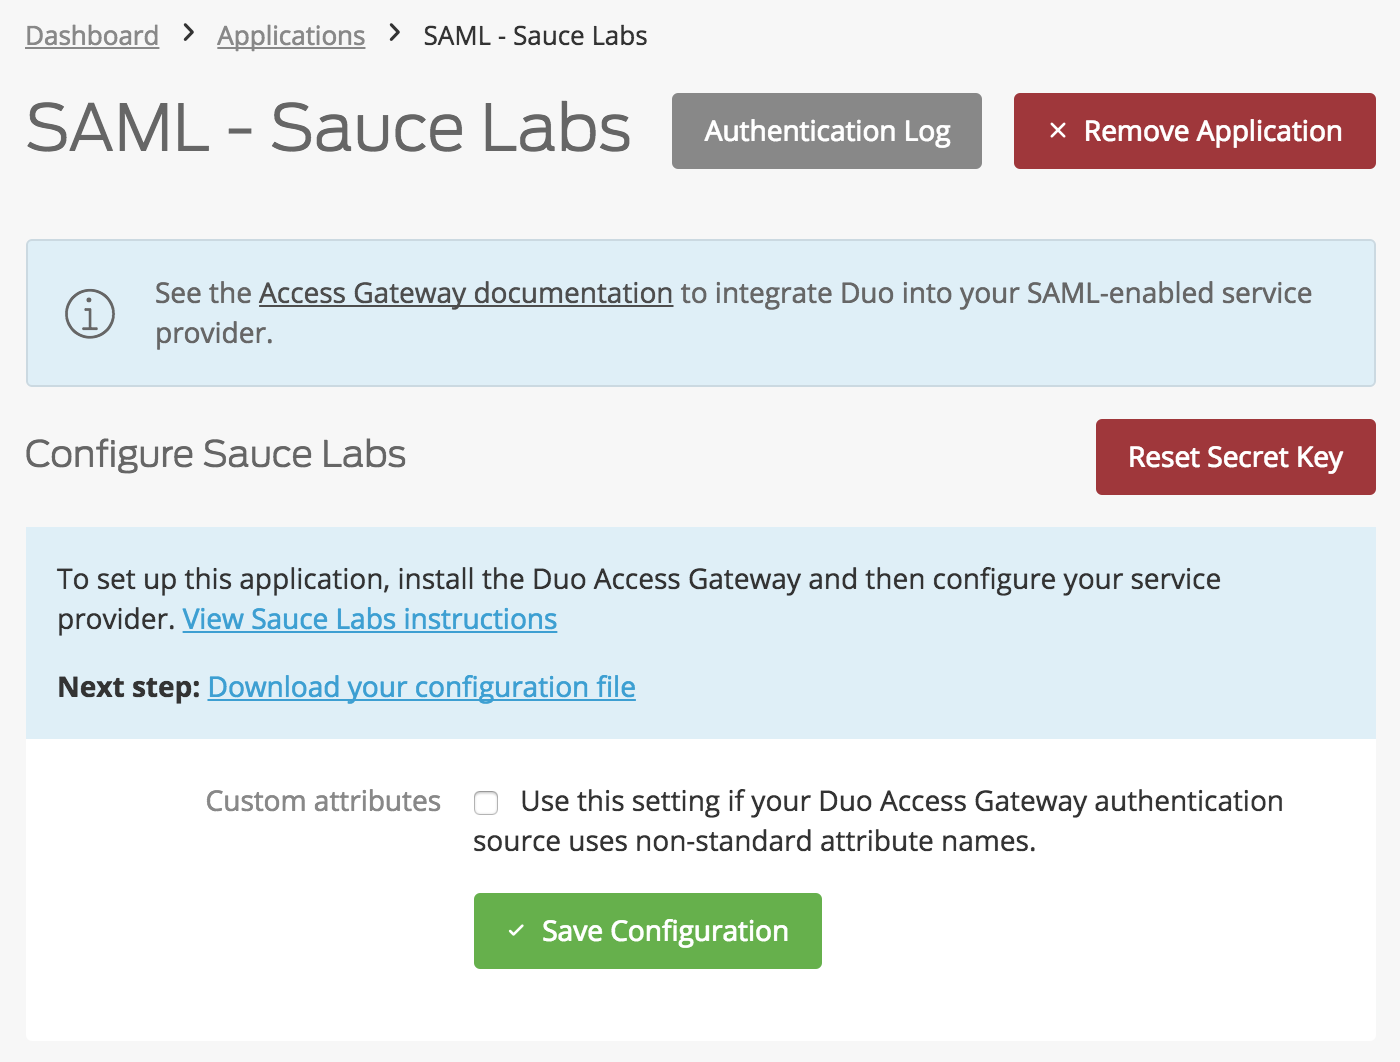 Duo Sauce Labs Application Settings